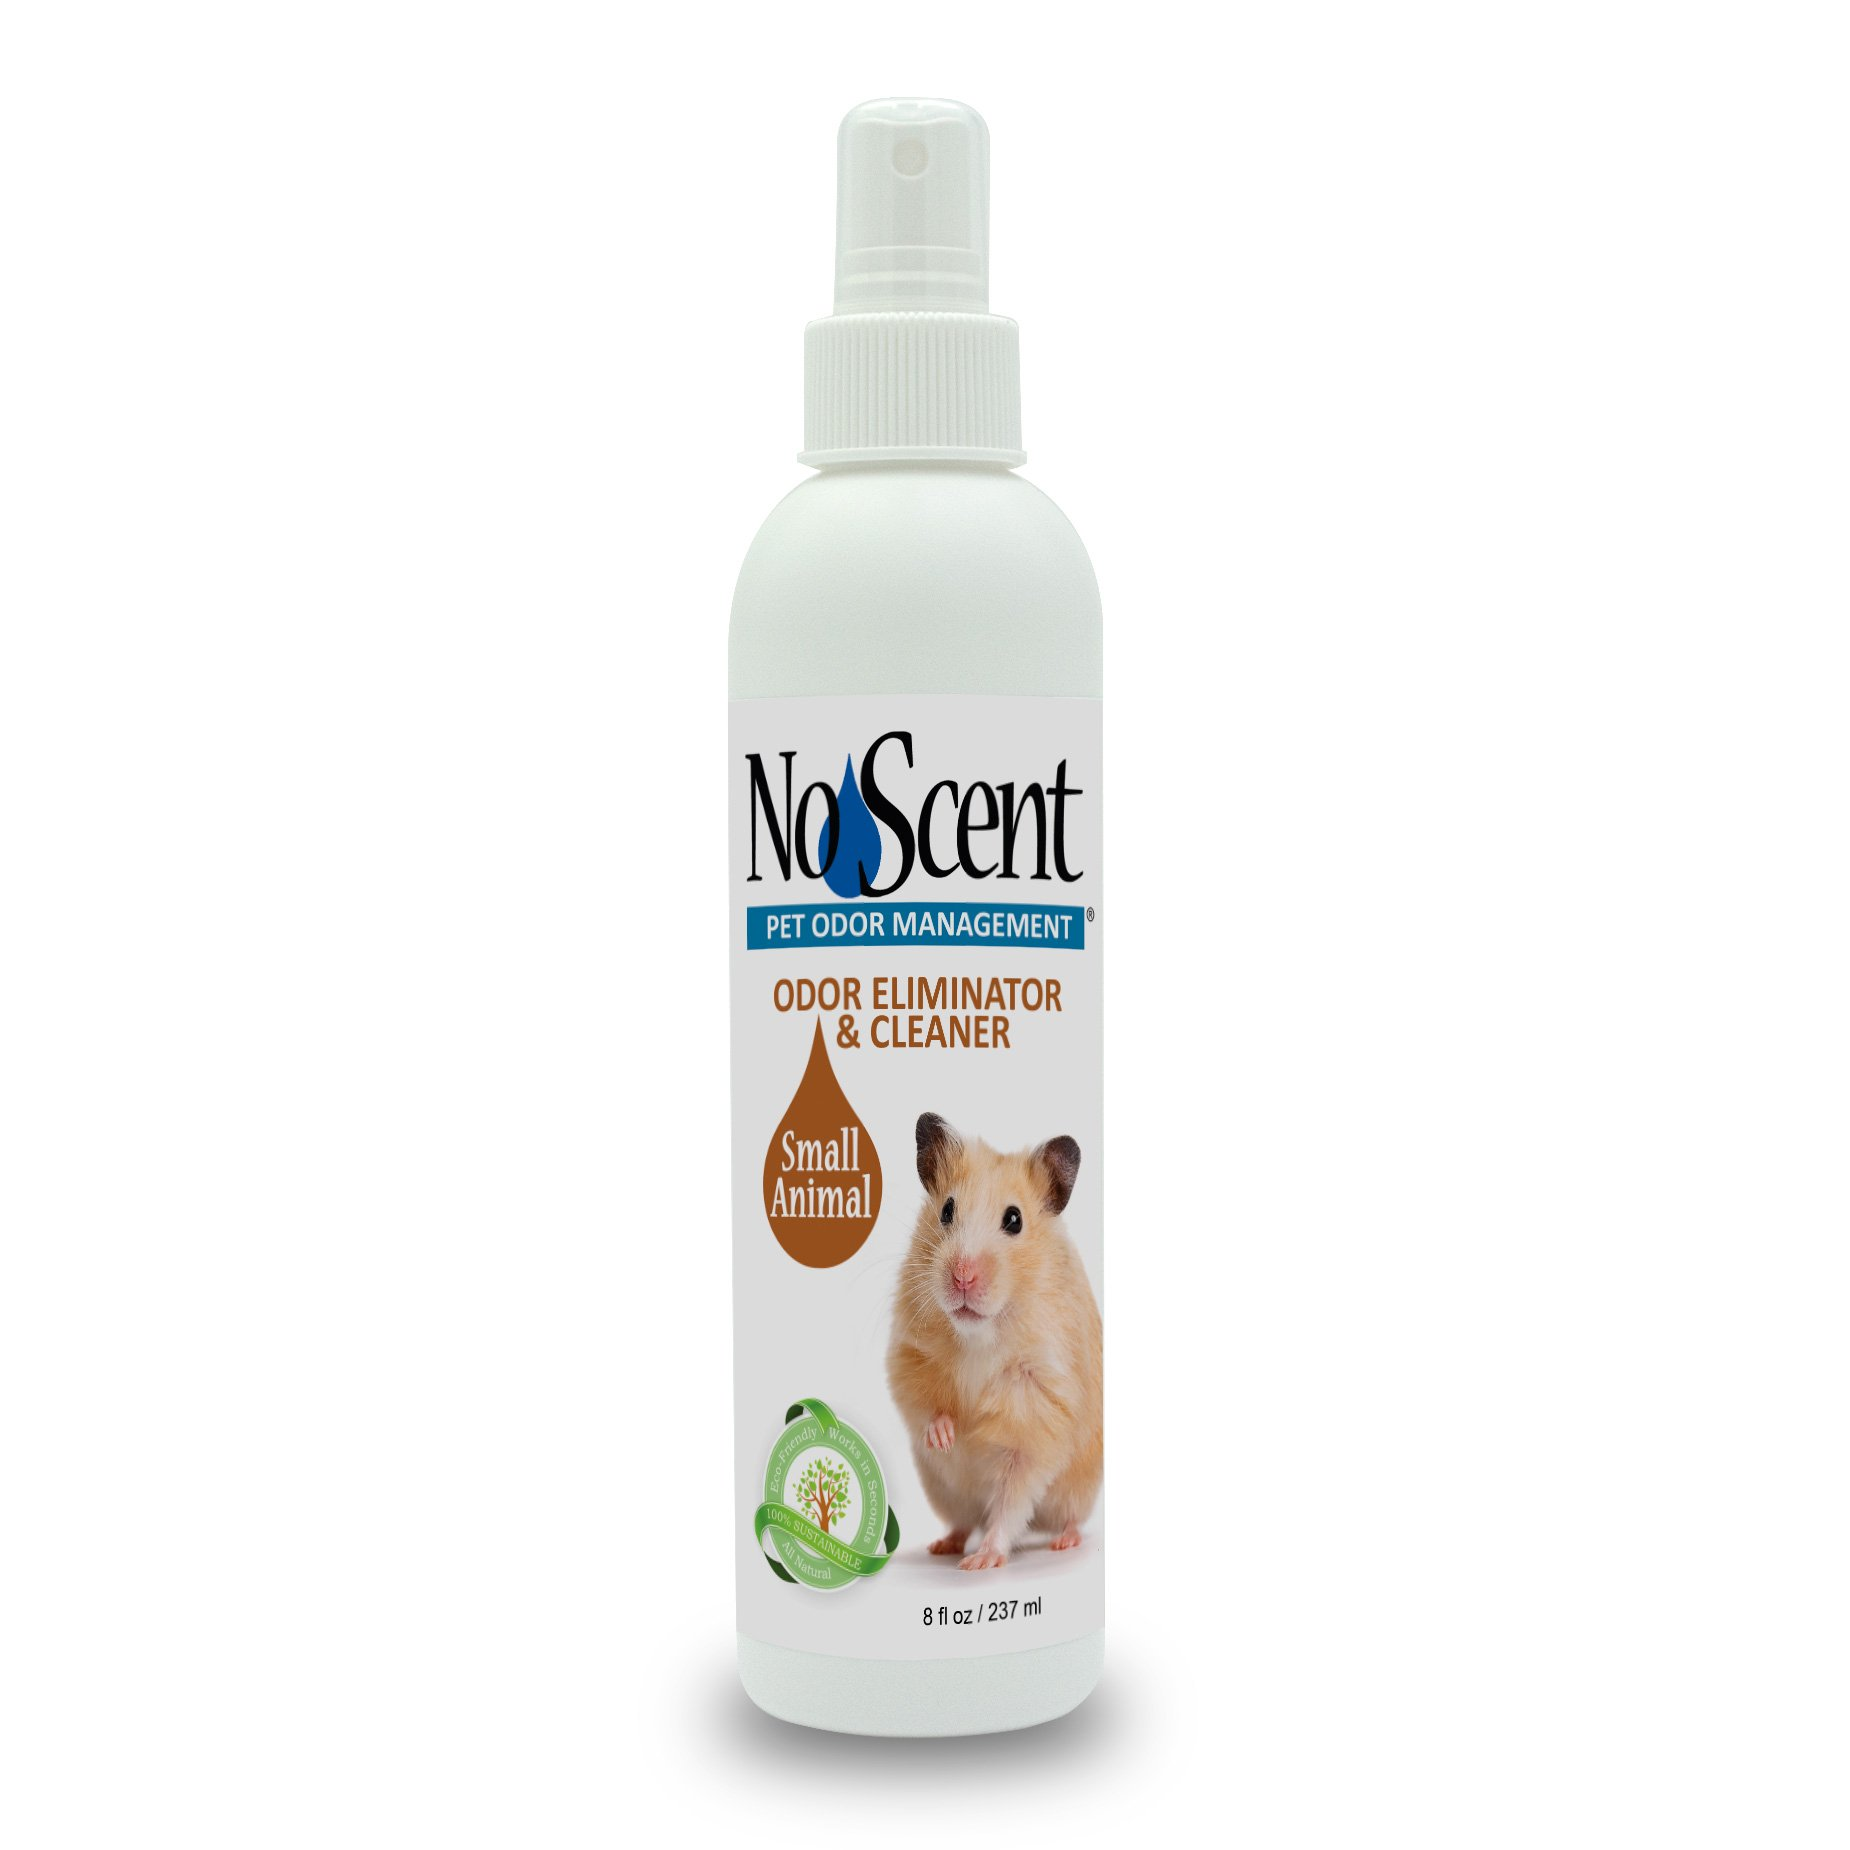 No Scent Small Animal - Professional Pet Waste Odor Eliminator & Cleaner - Safe All Natural Probiotic & Enzyme Formula Smell Remover for Hutches Tanks Enclosures Bedding Toys and Surfaces (8 oz)